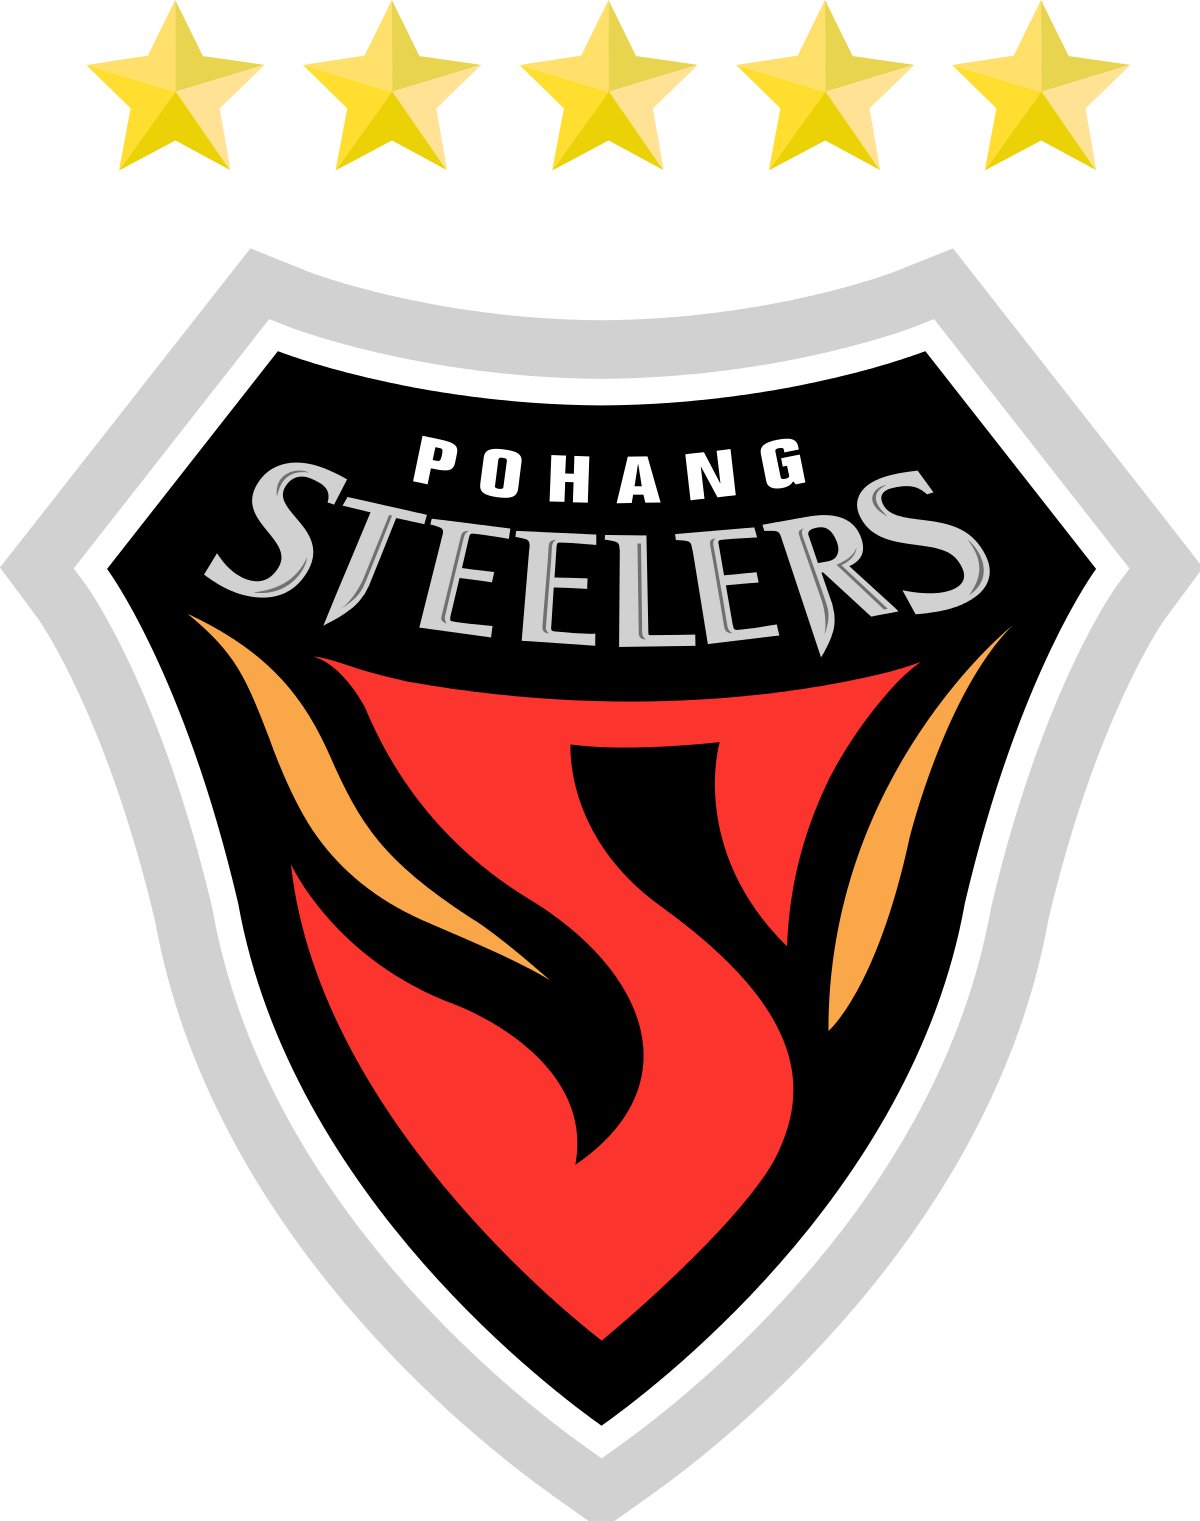 Steelers football clipart download Pohang Steelers - Wikipedia download